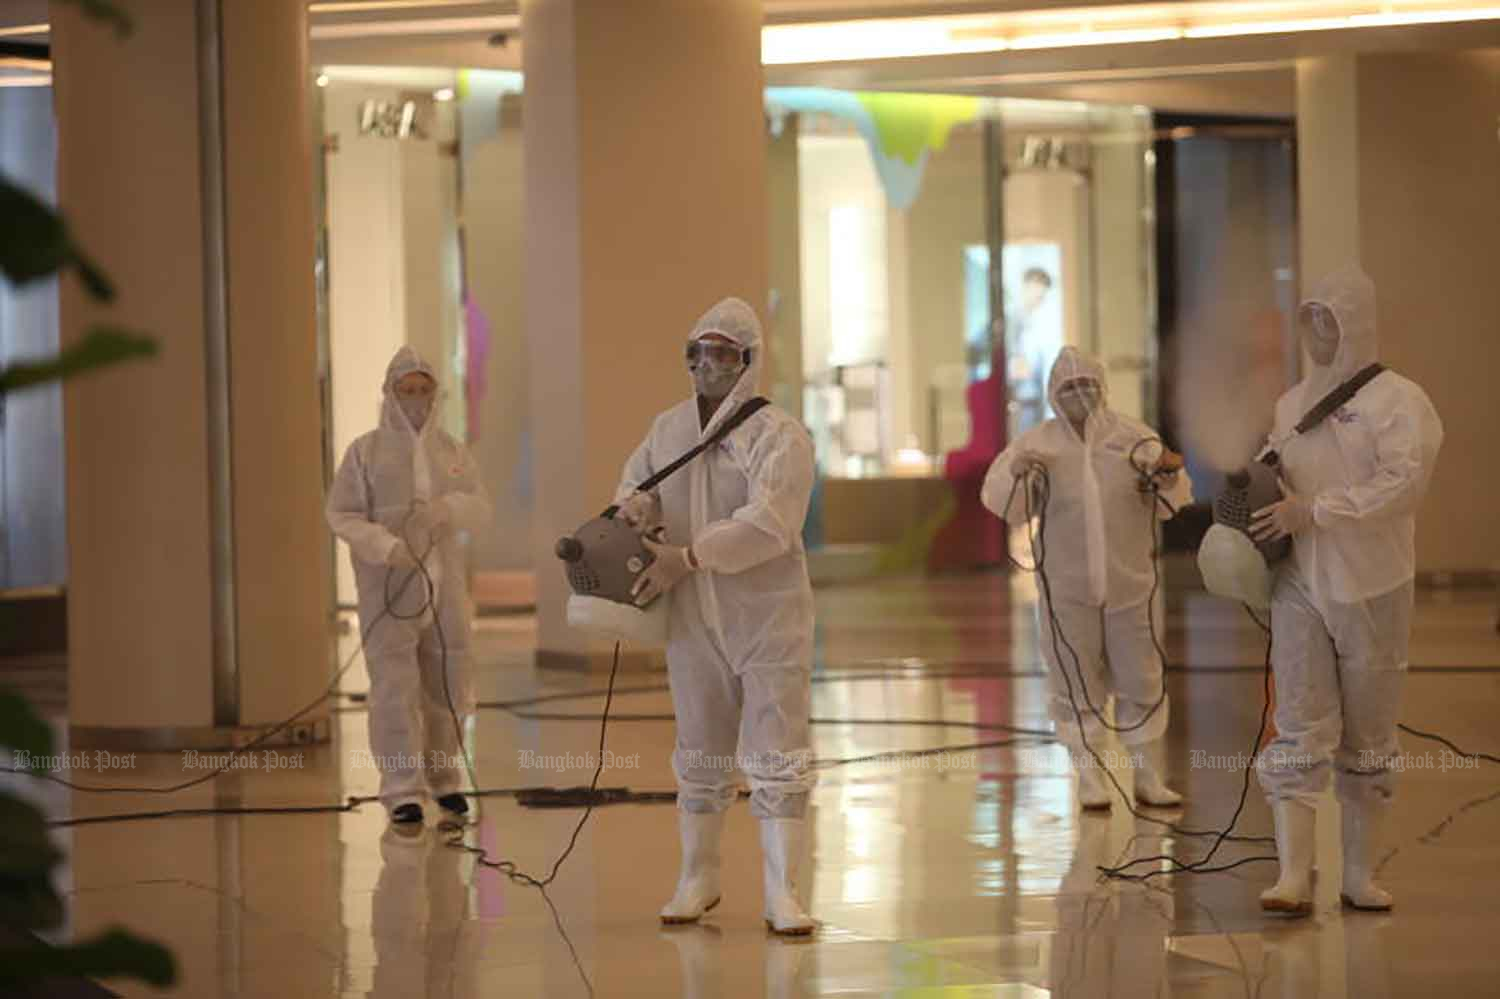 Workers spray disinfectant at a shopping centre in Bangkok on Monday to prepare for reopening on Wednesday. (Photo: Apichart Jinakul)